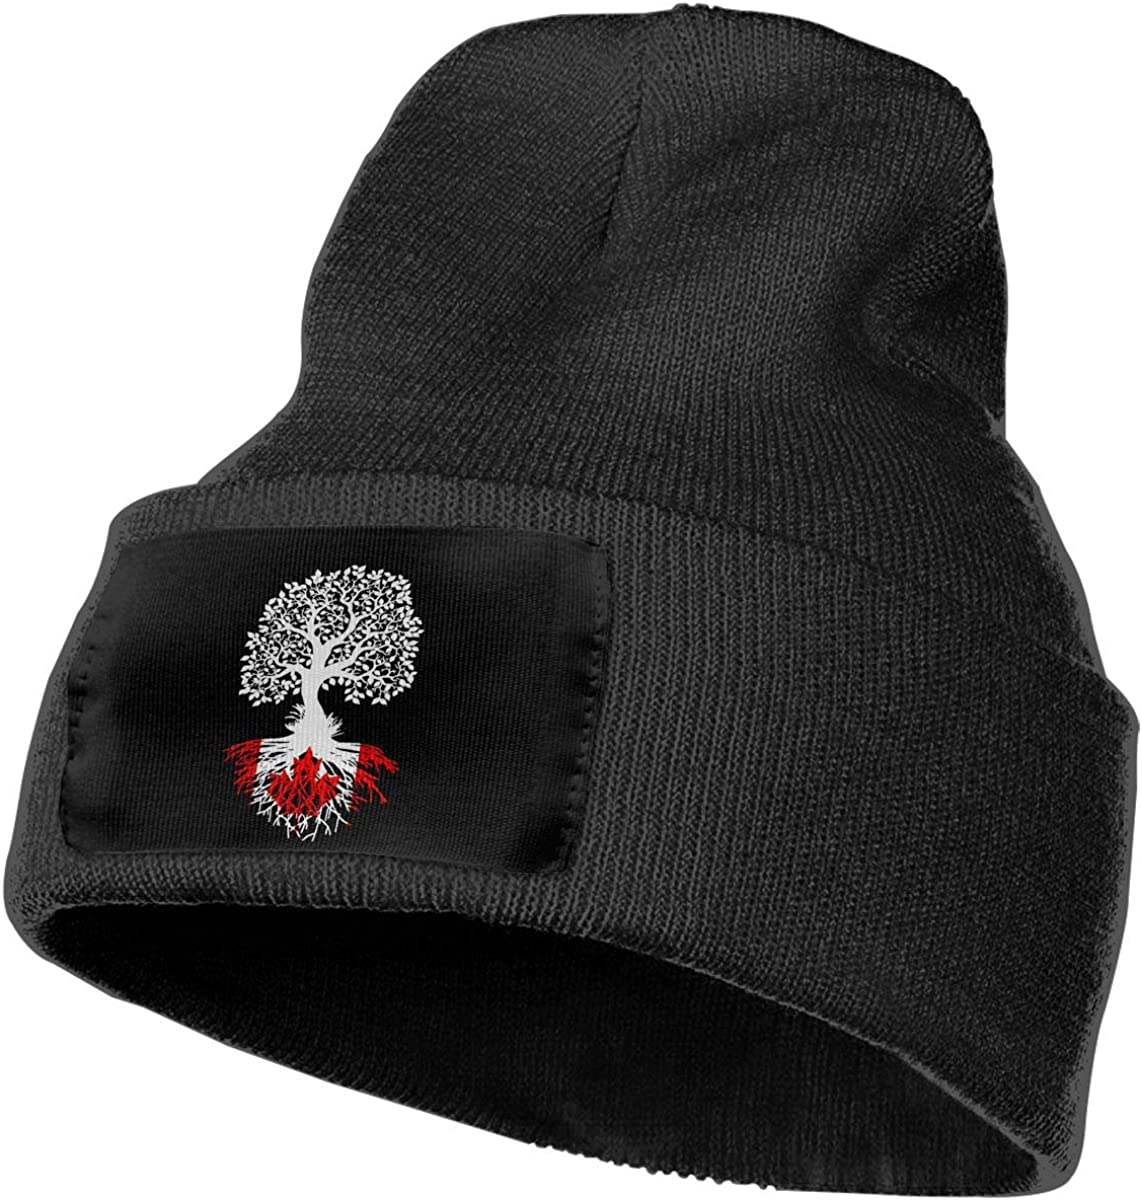 COLLJL-8 Men /& Women American Grown Canada Root Outdoor Stretch Knit Beanies Hat Soft Winter Skull Caps